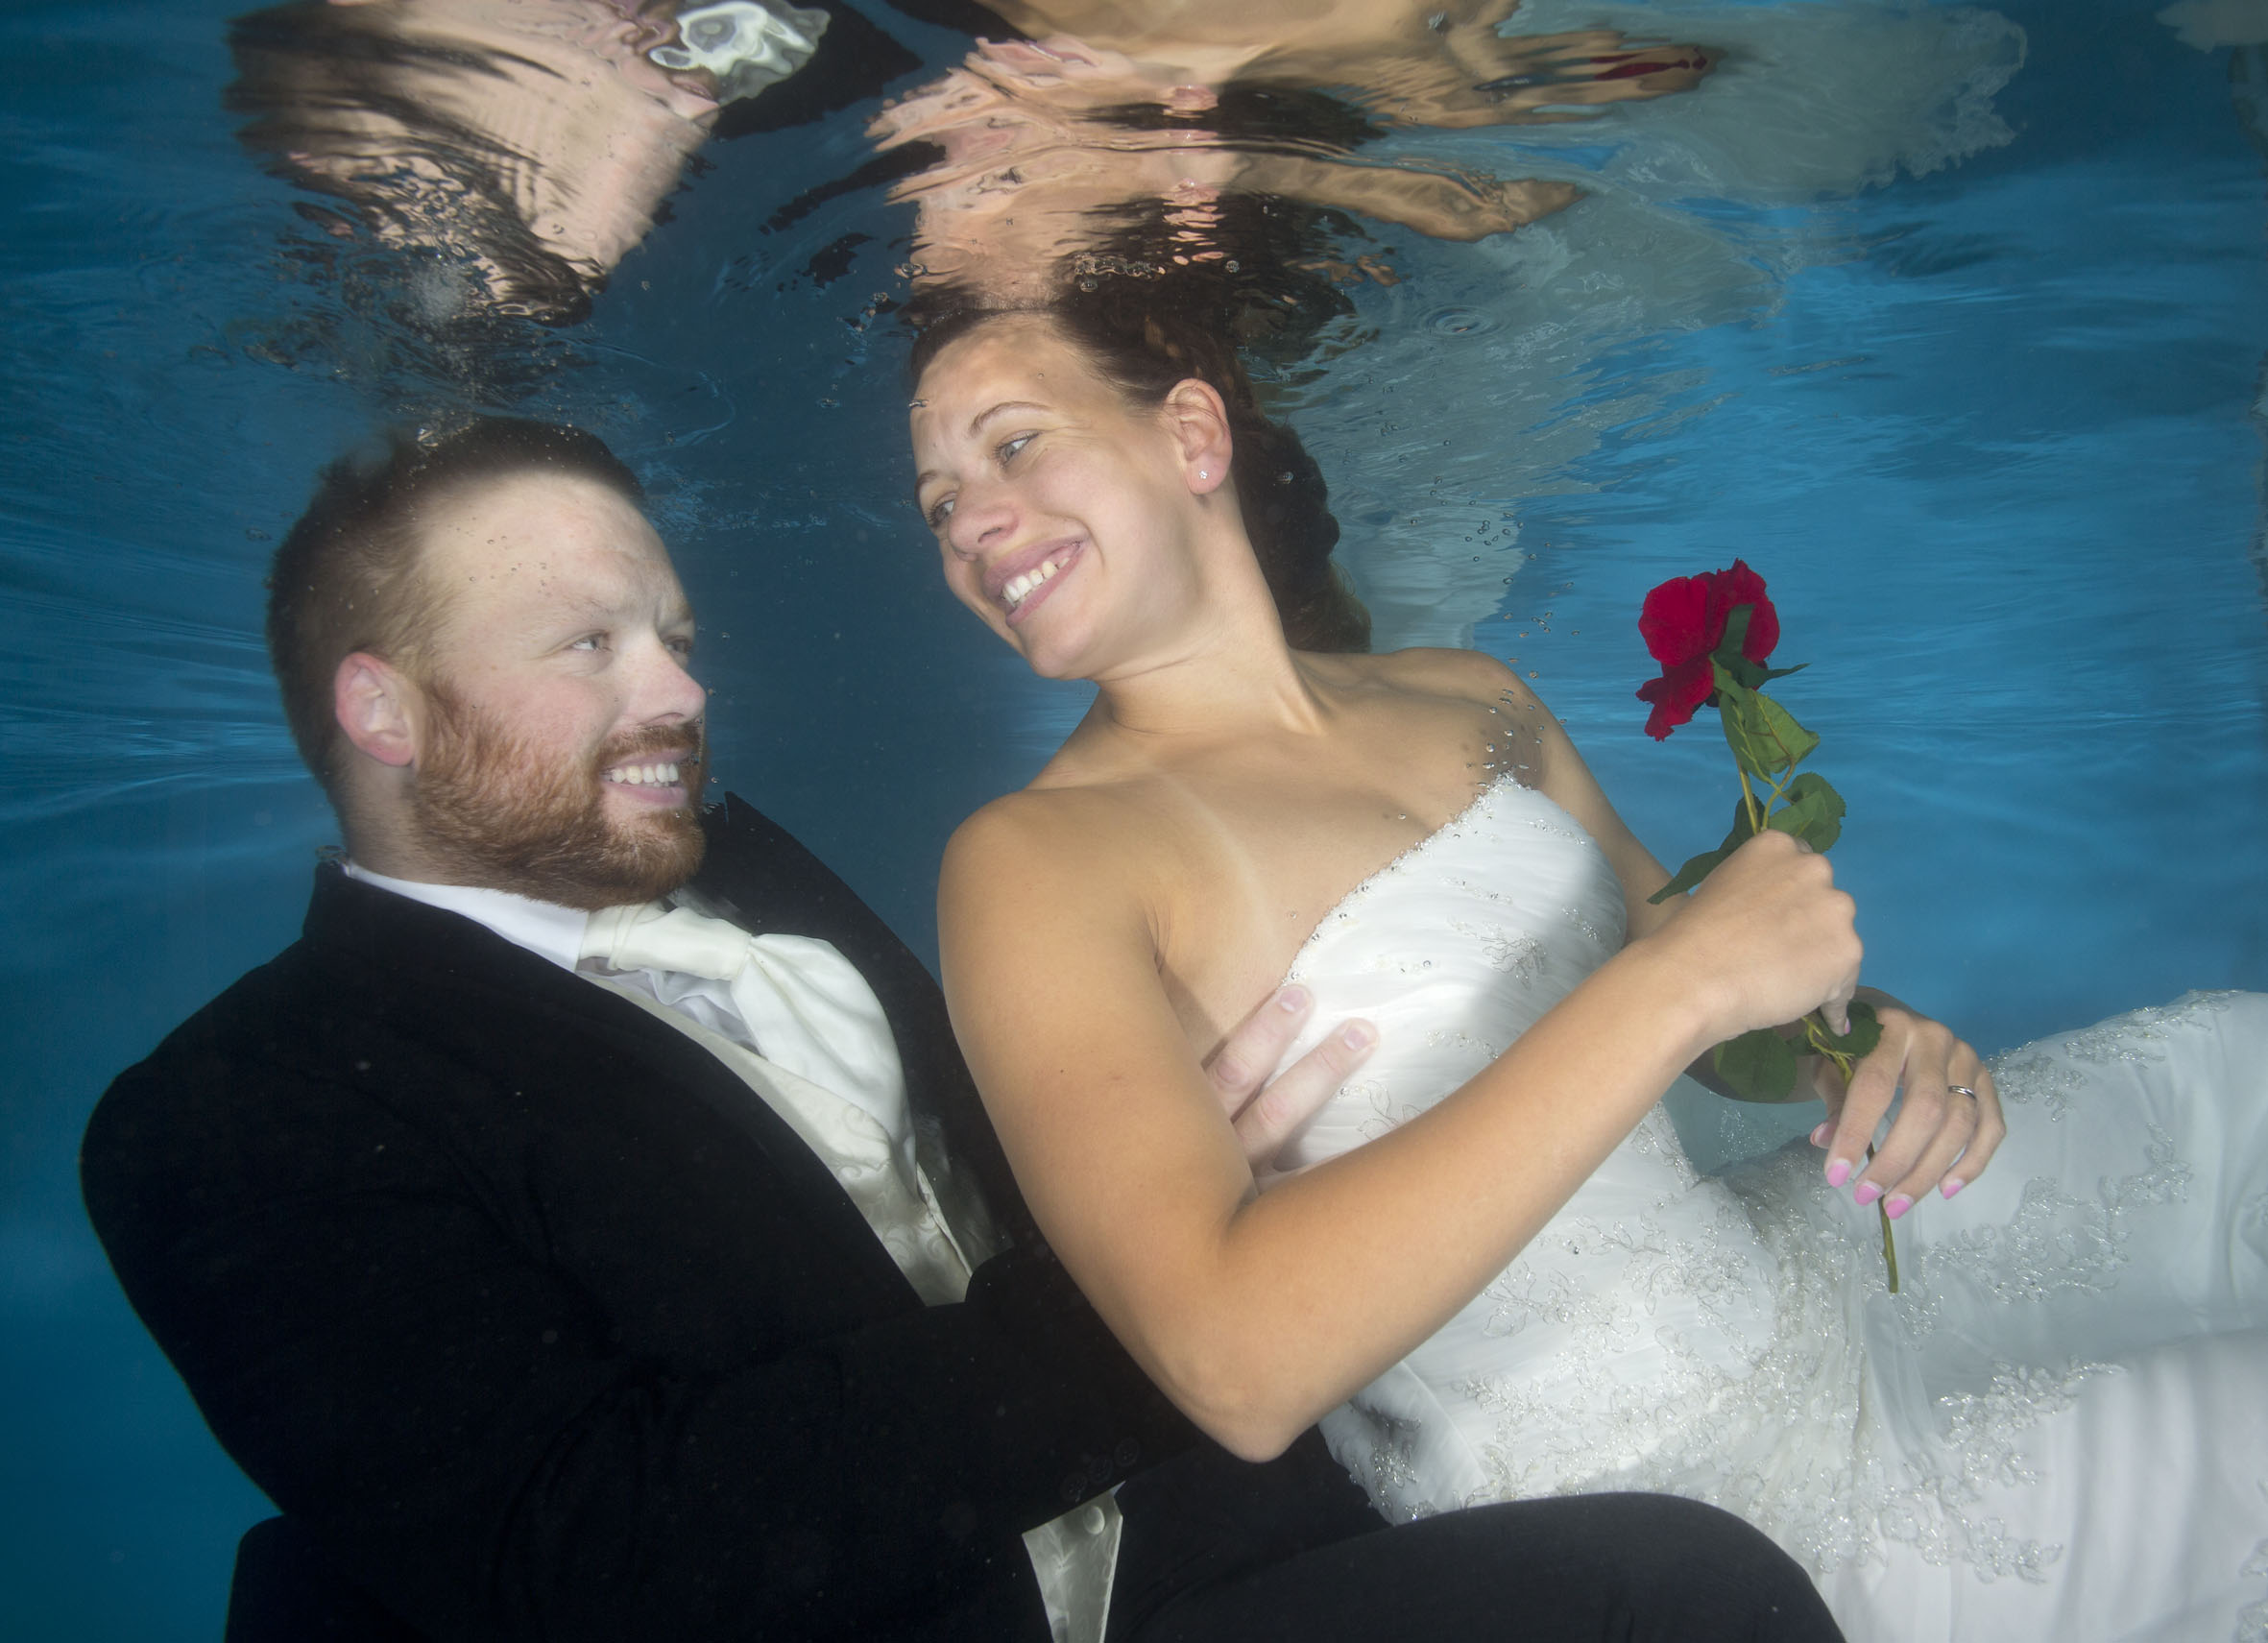 Celebrating 6 years of marriage with a splash!